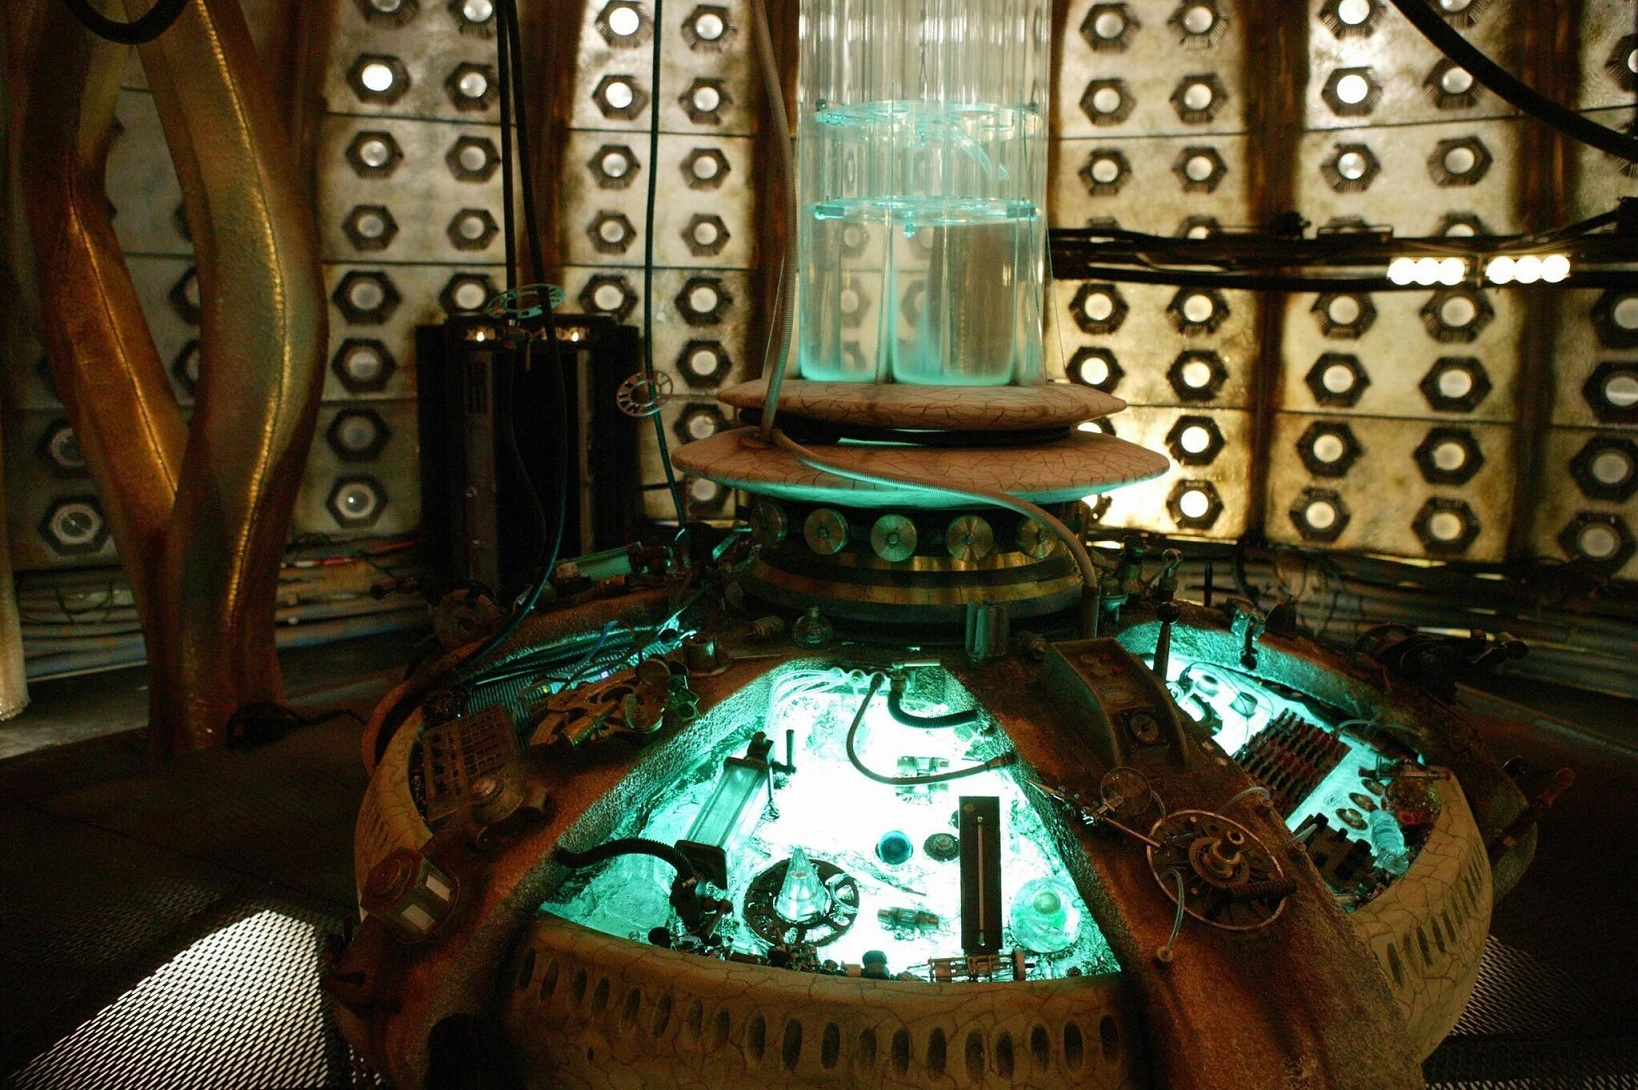 Host Your Zoom Video Calls from Inside the TARDIS!